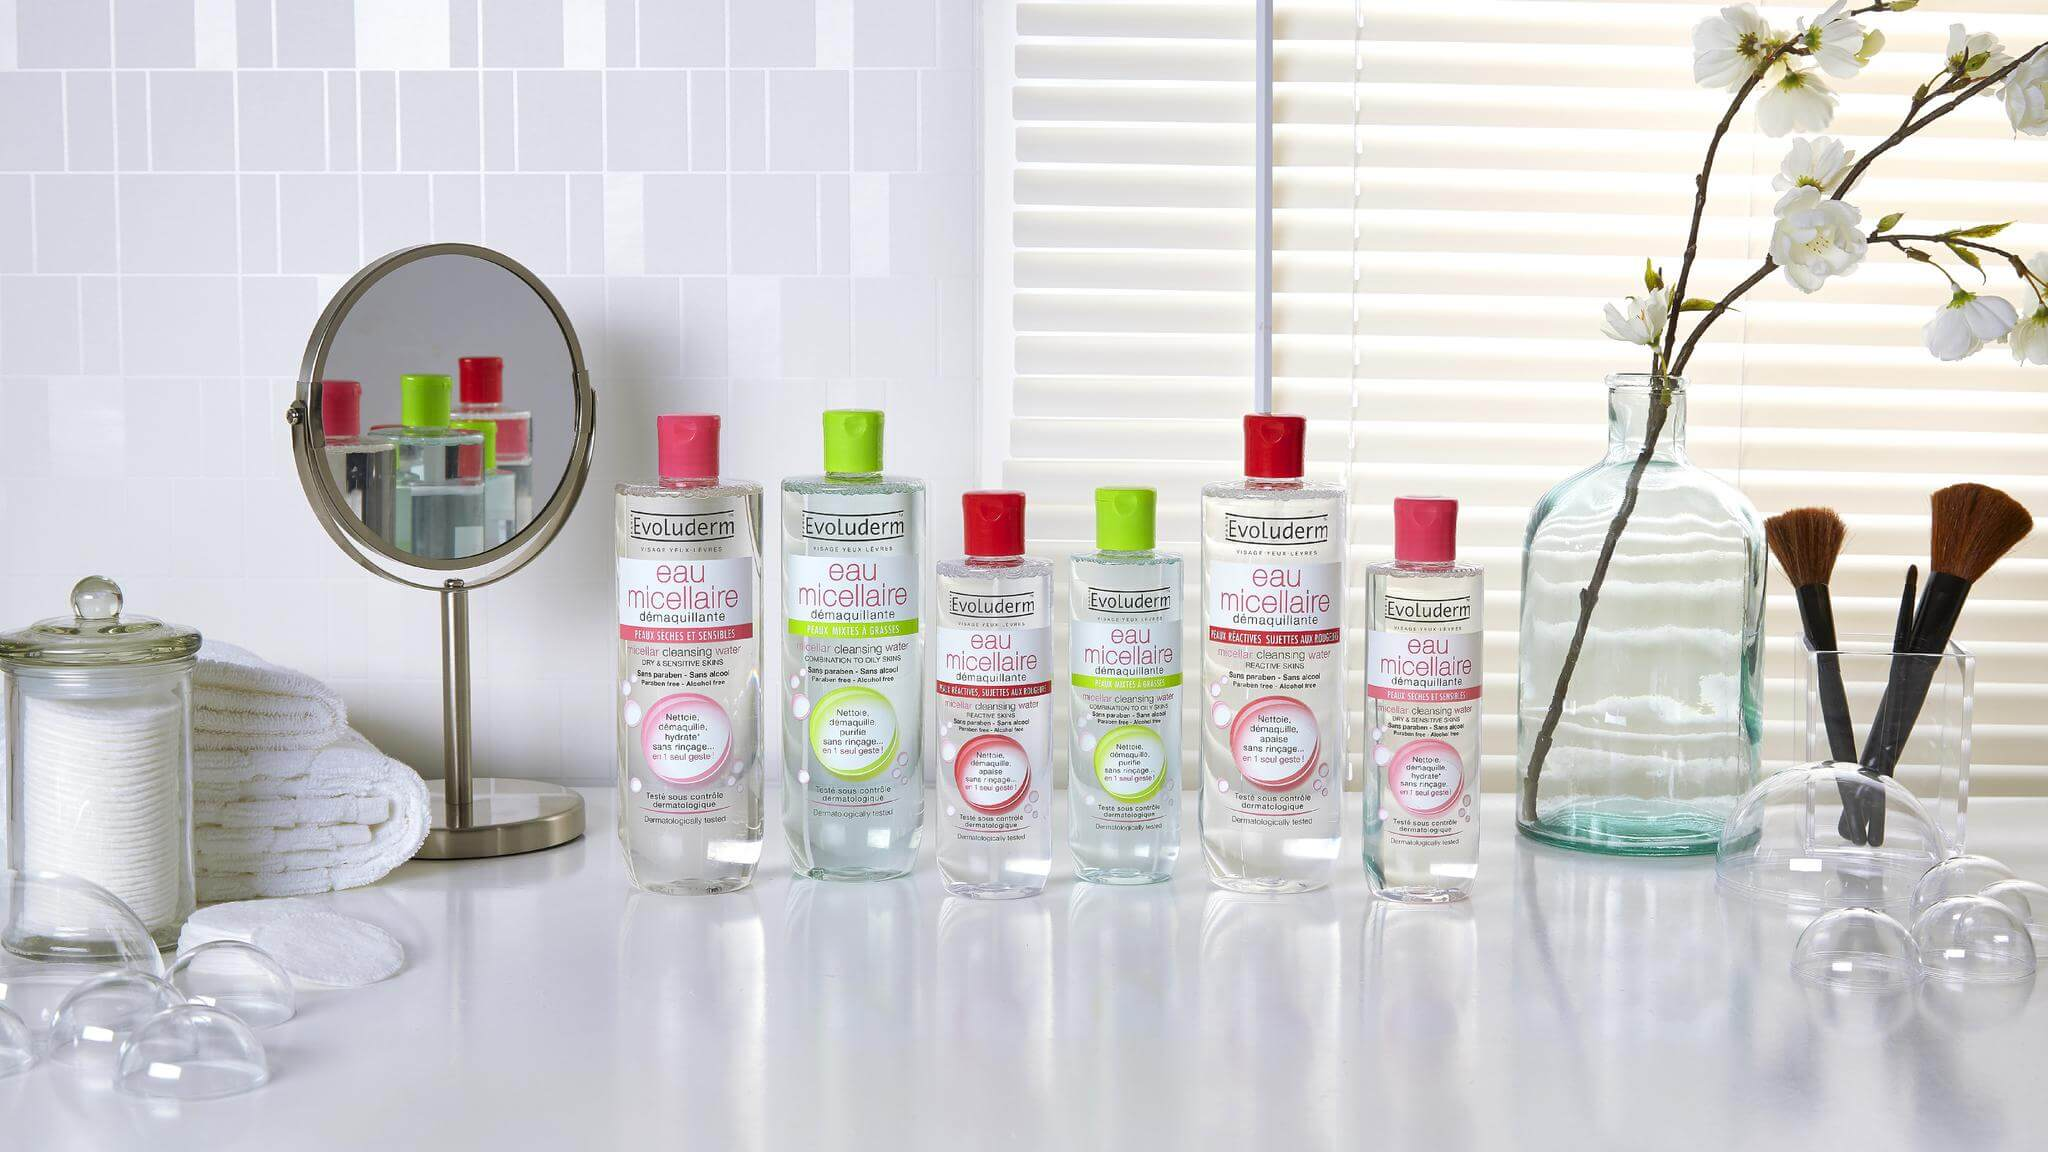 Evoluderm Micellar Cleansing Water-bicicosmetics.vn